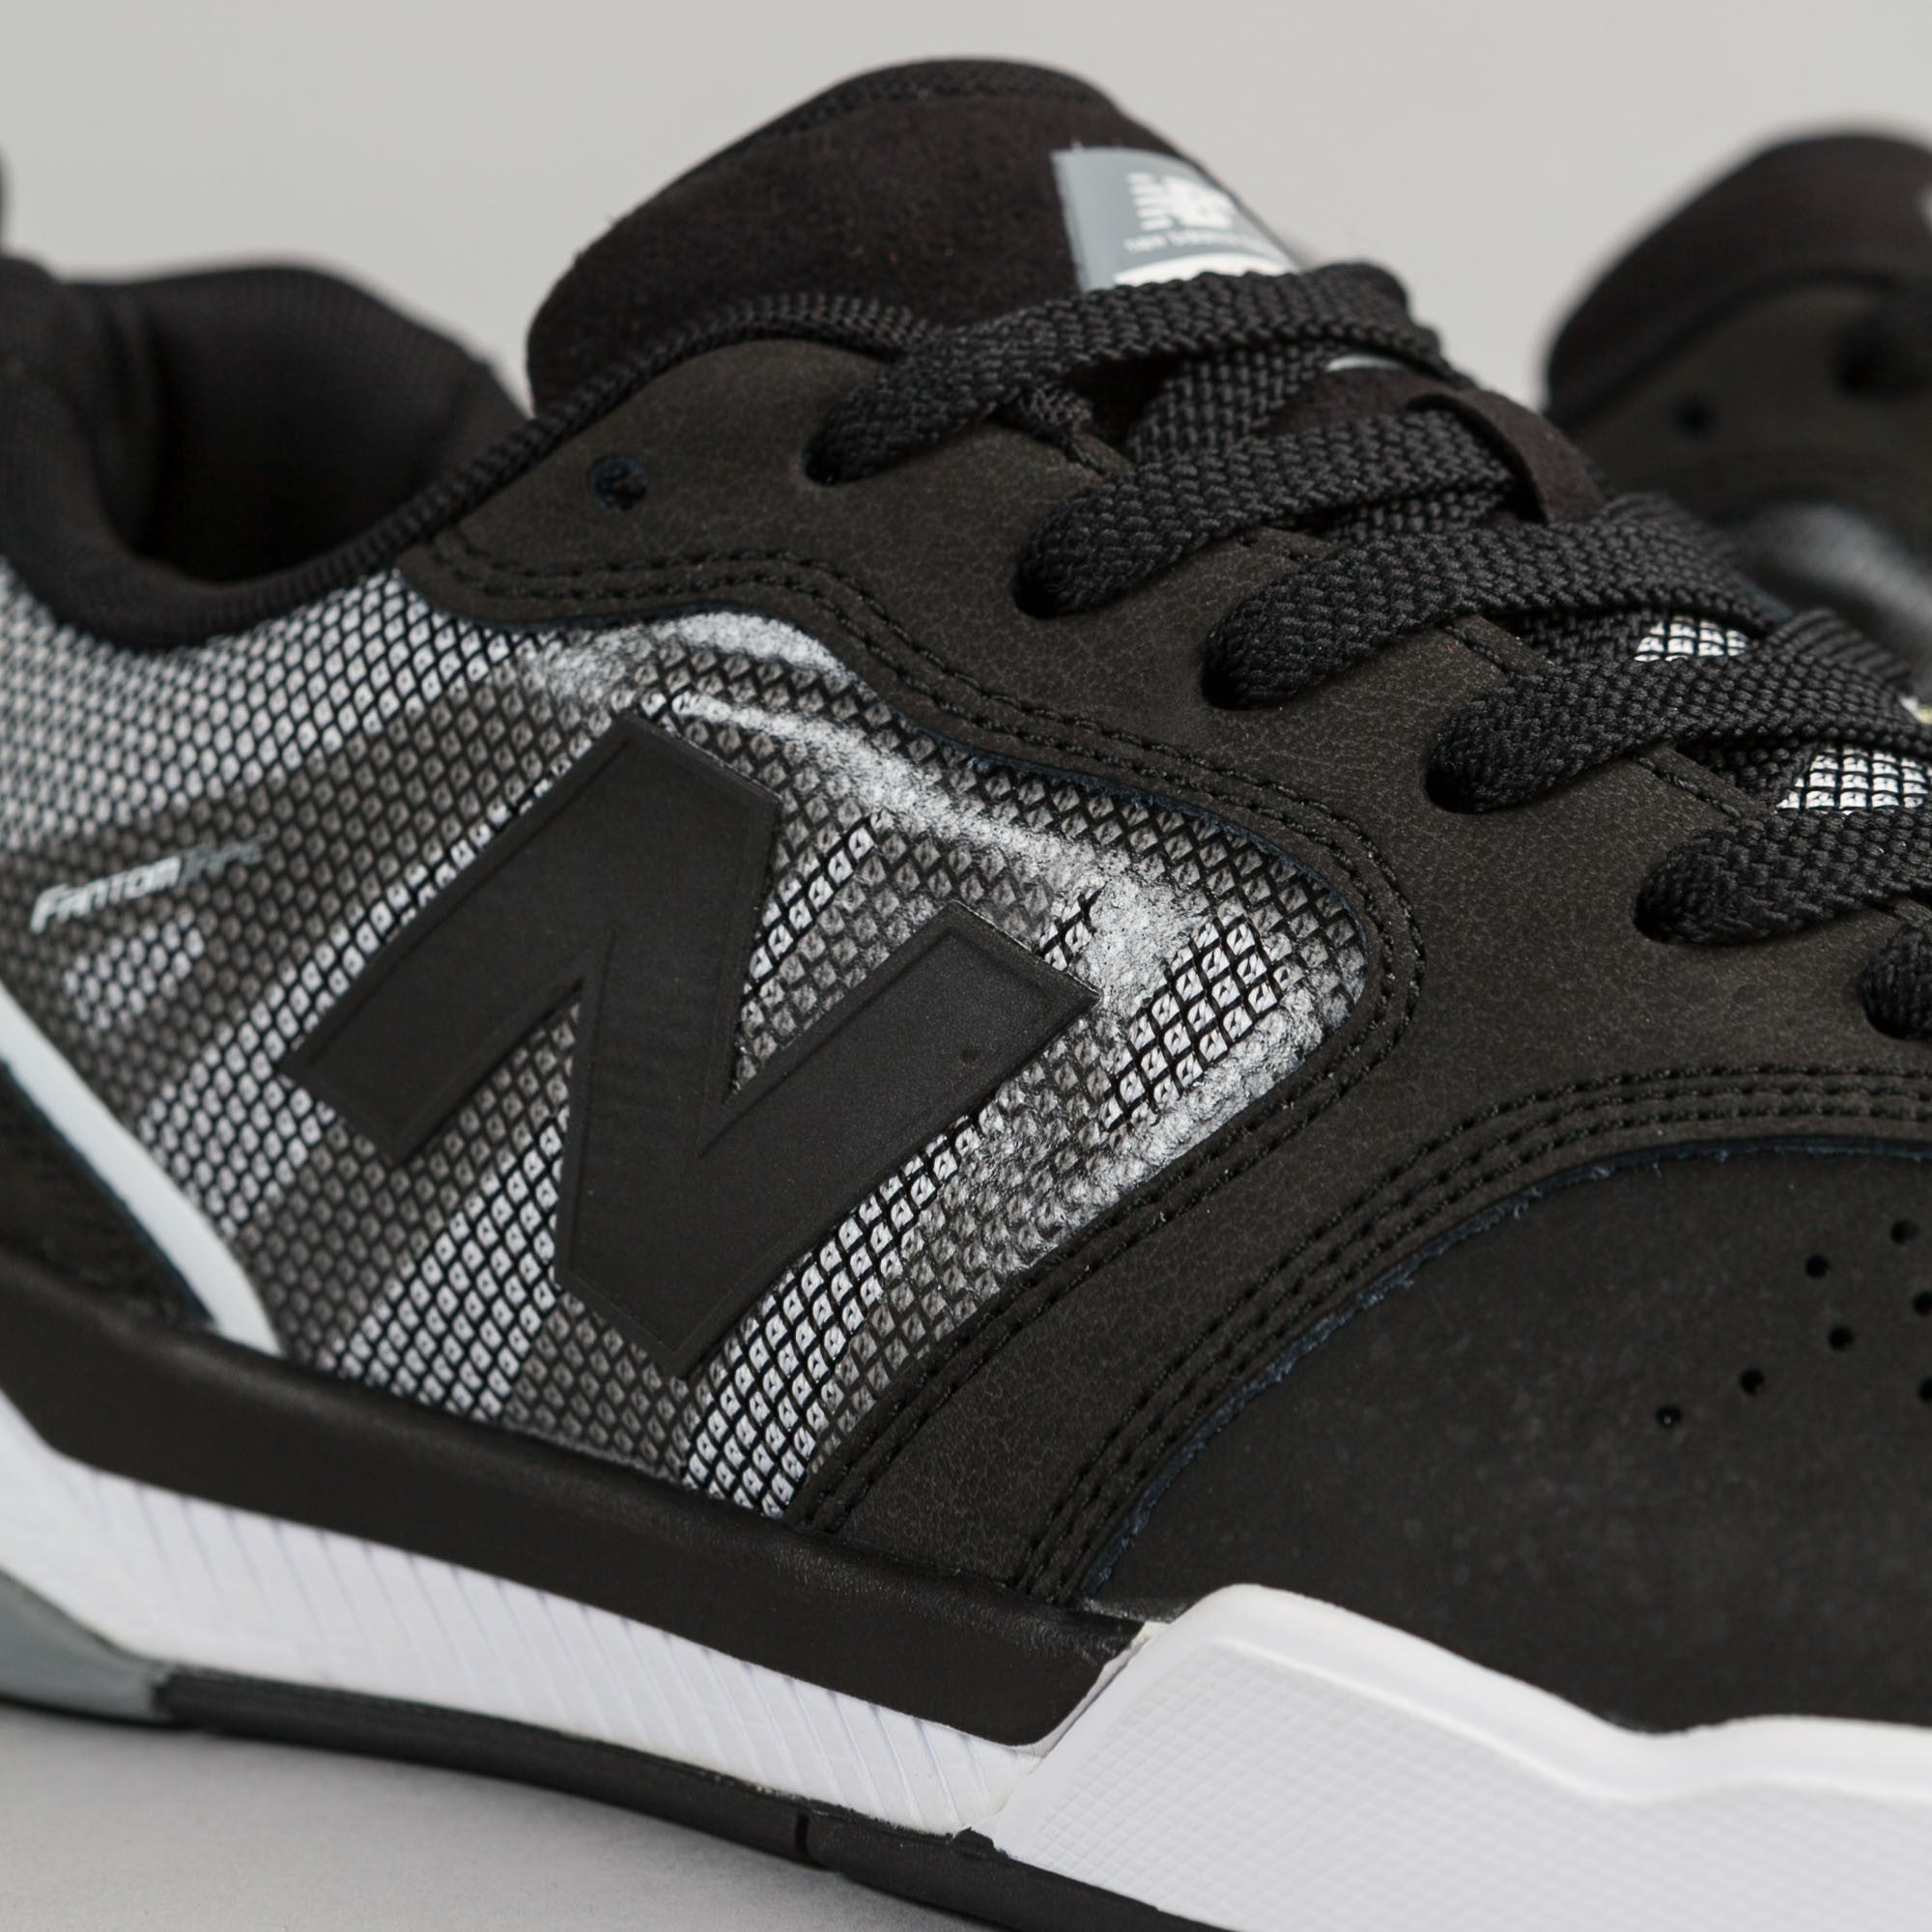 New Balance Numeric 868 Shoes - Black / White